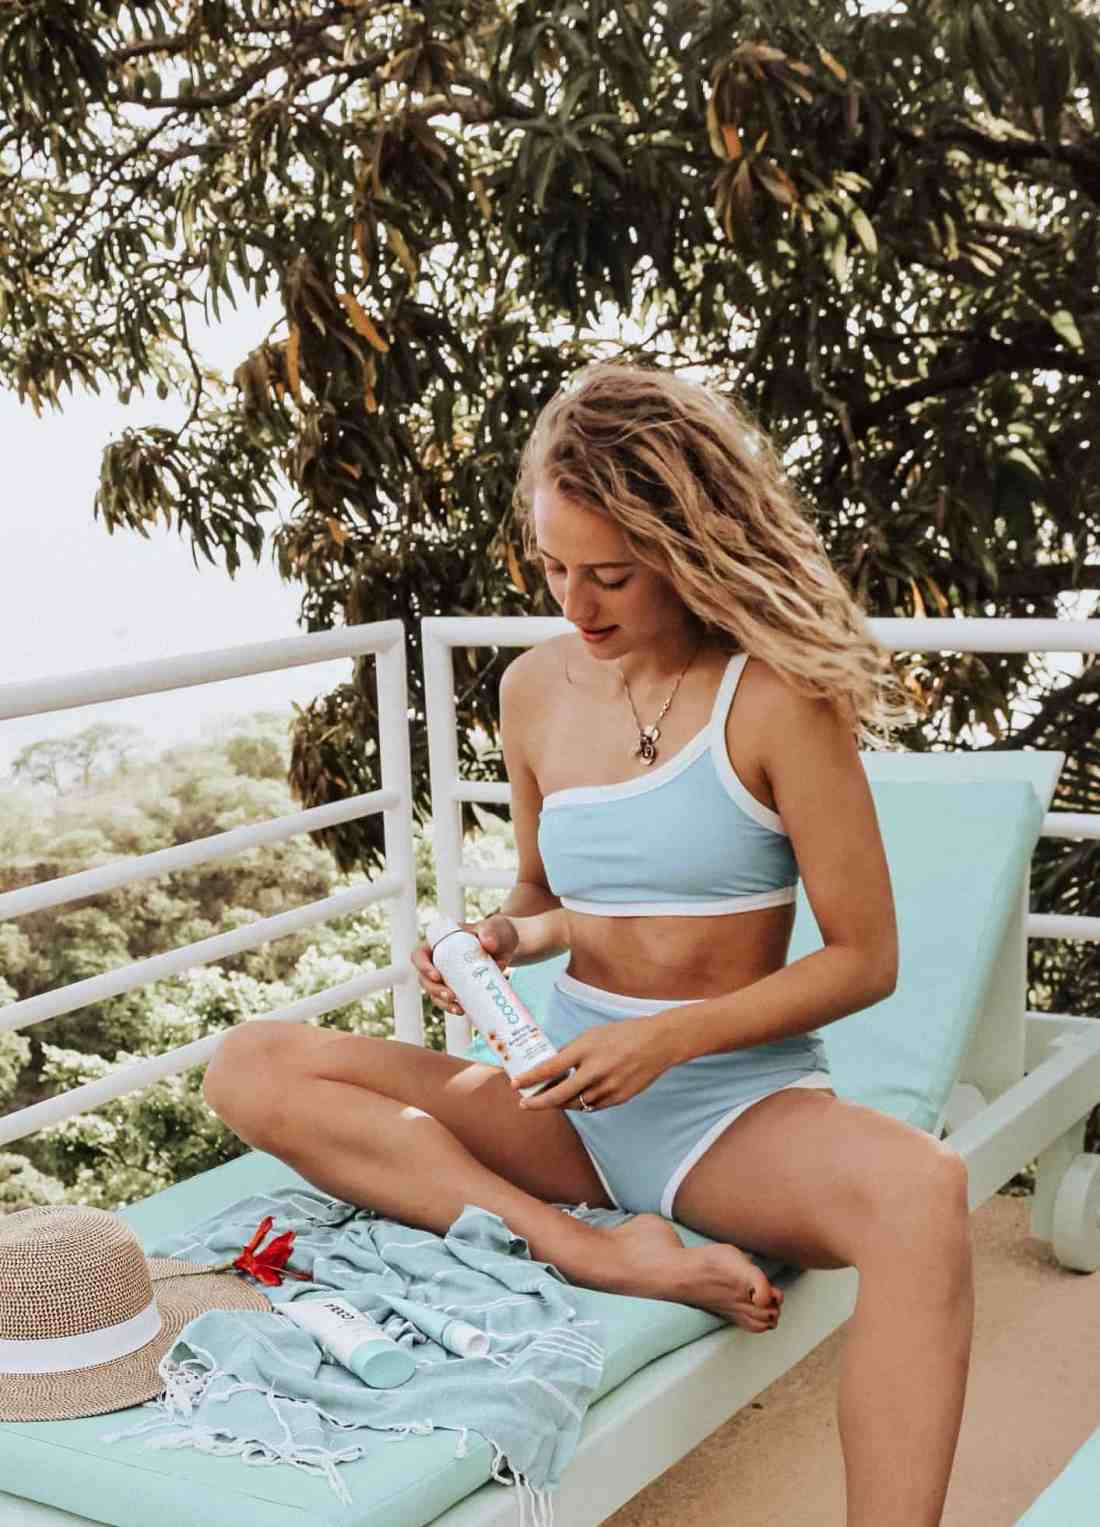 Sharing why COOLA Mineral Sunscreen is now my go-to for sun protection! Paraben free, reef safe, vegan & gluten free...COOLA has a product for everyone!